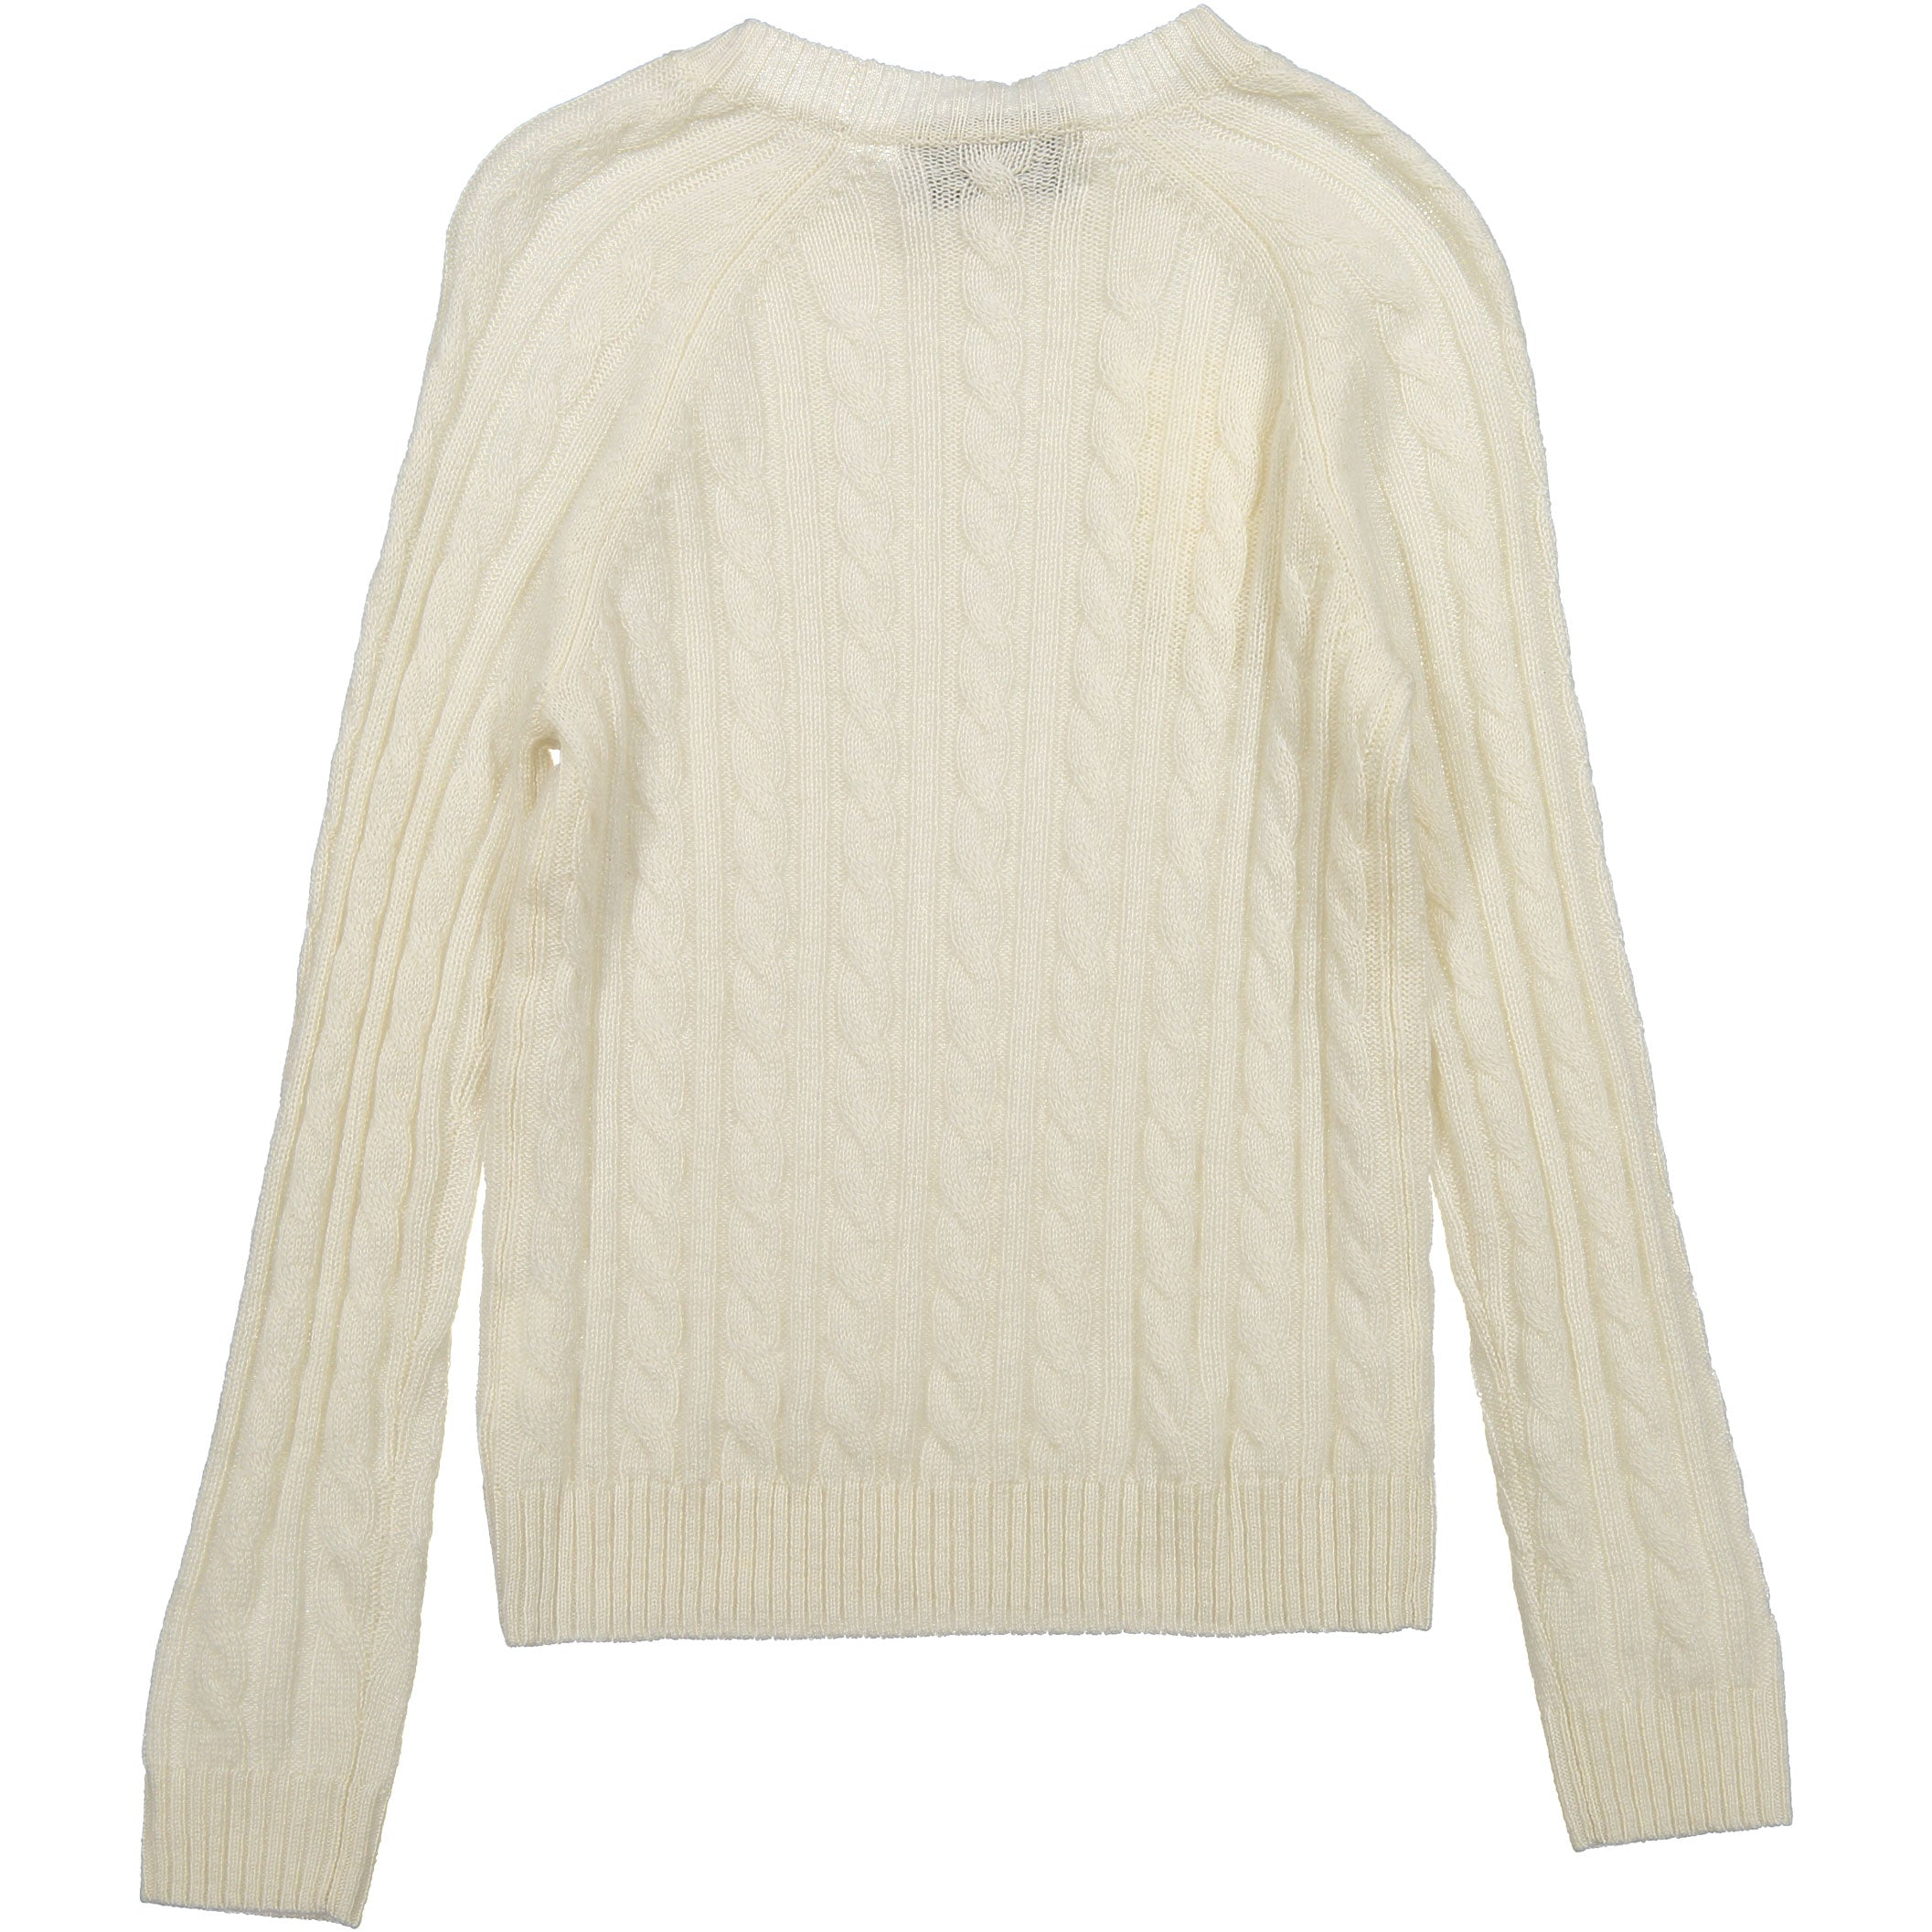 8b5aa7b0102b5a Autumn Cashmere Cream Cable Knit Sweater